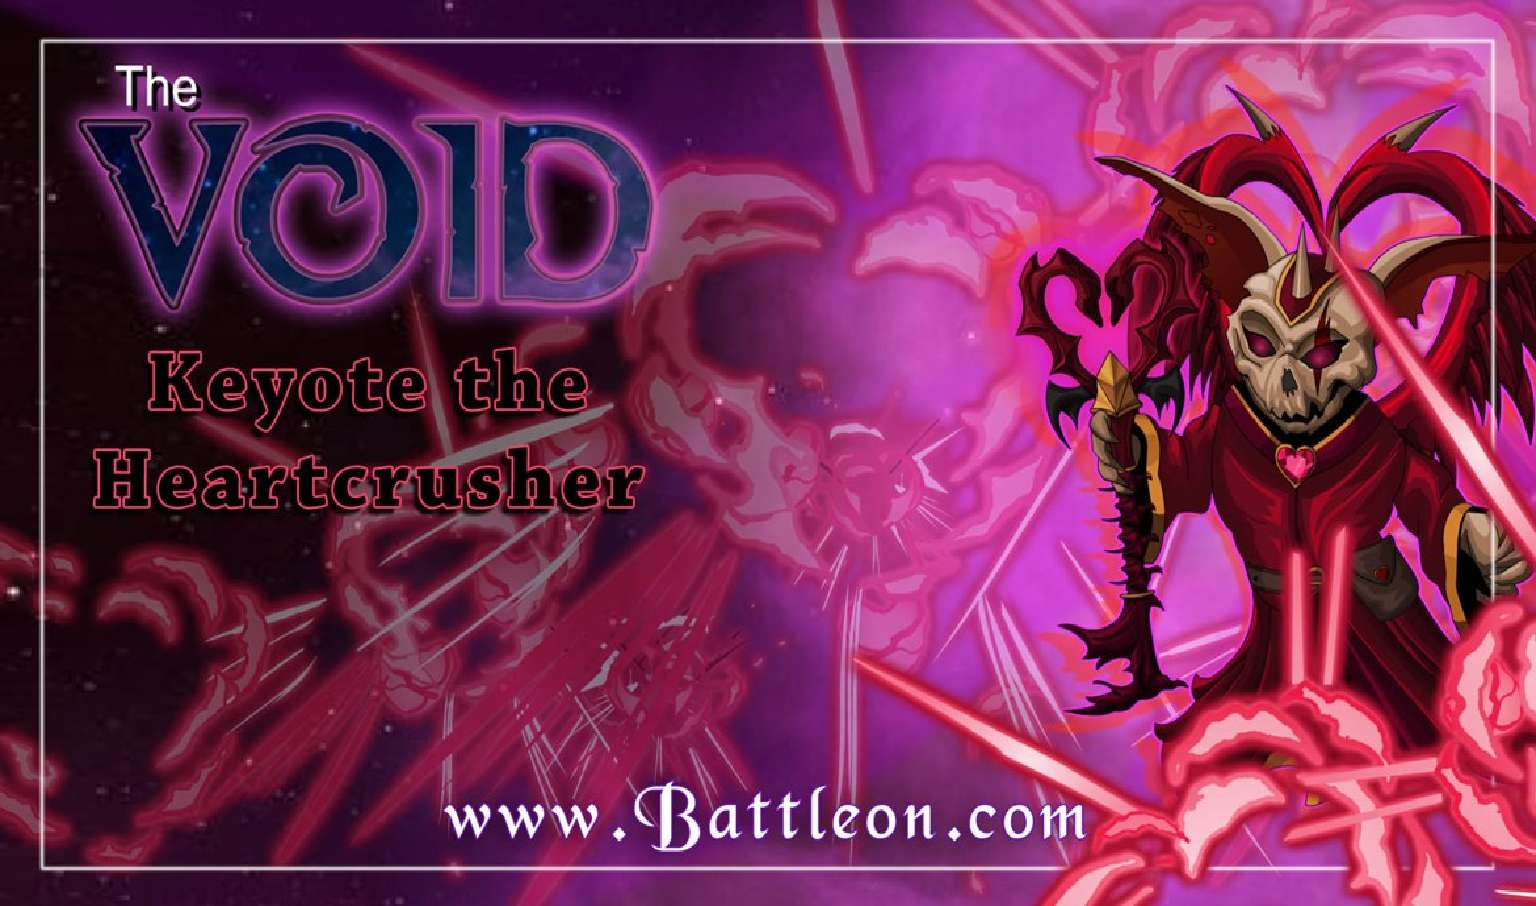 AdventureQuest Prepares For Valentine's Day With The Void Takeover And More